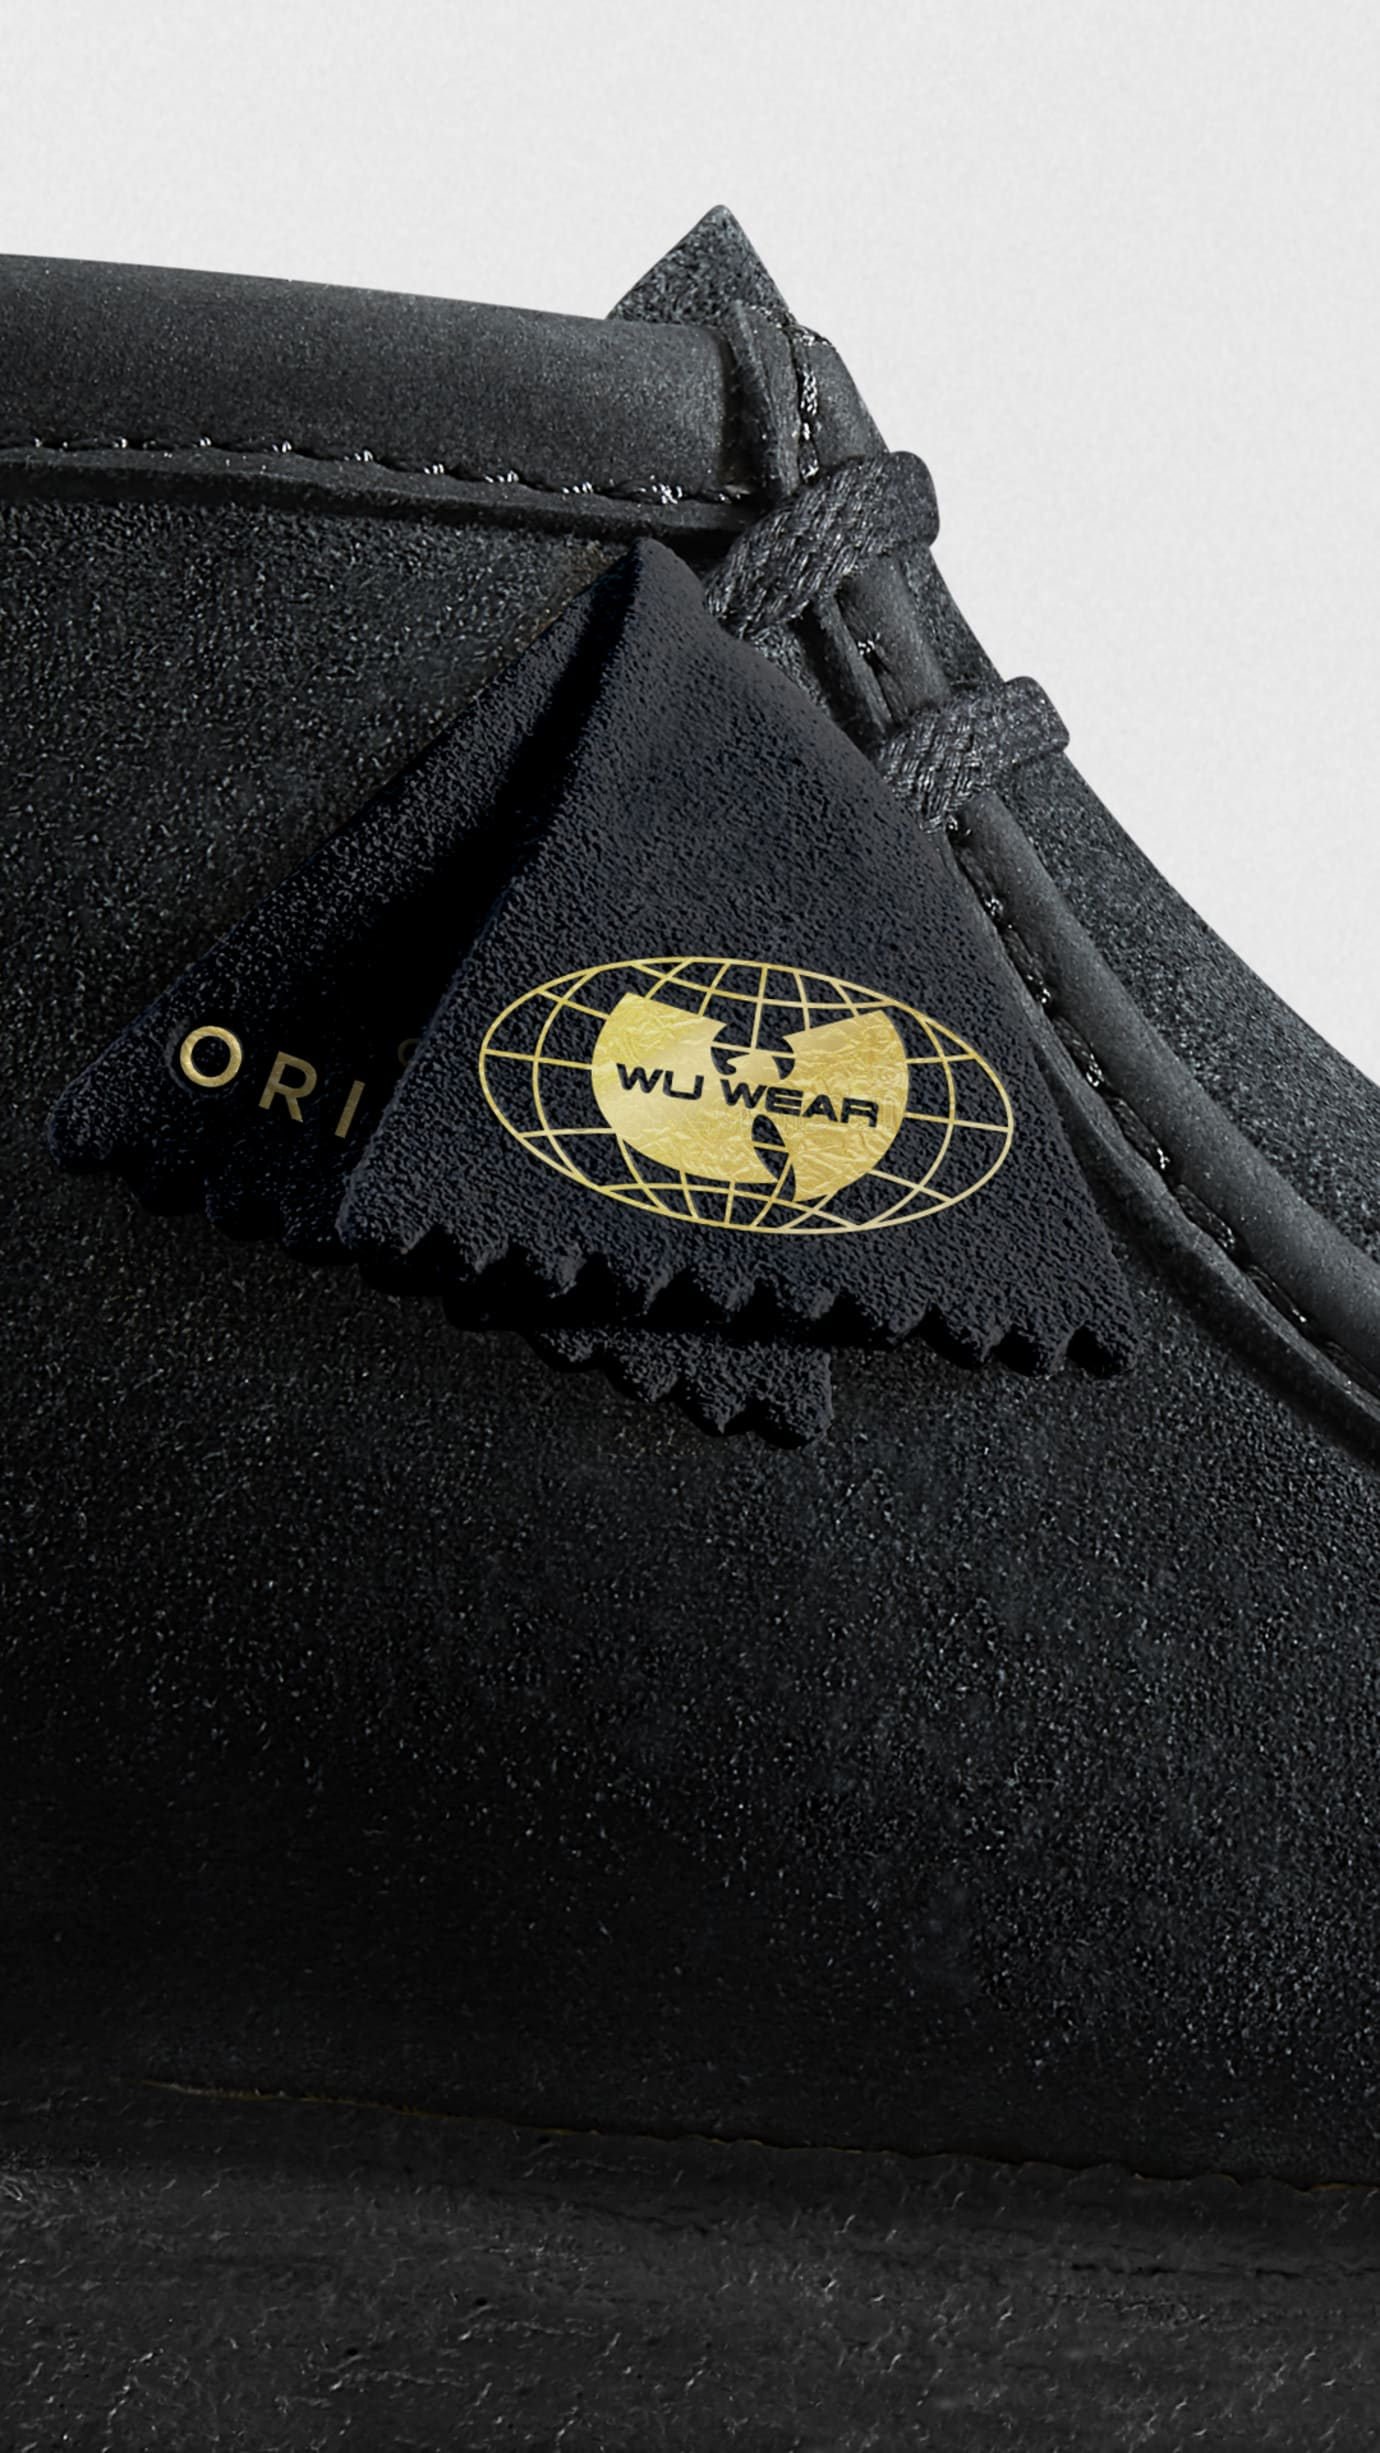 Wu-Wear x Clarks Originals Wallabee Black (Detail)